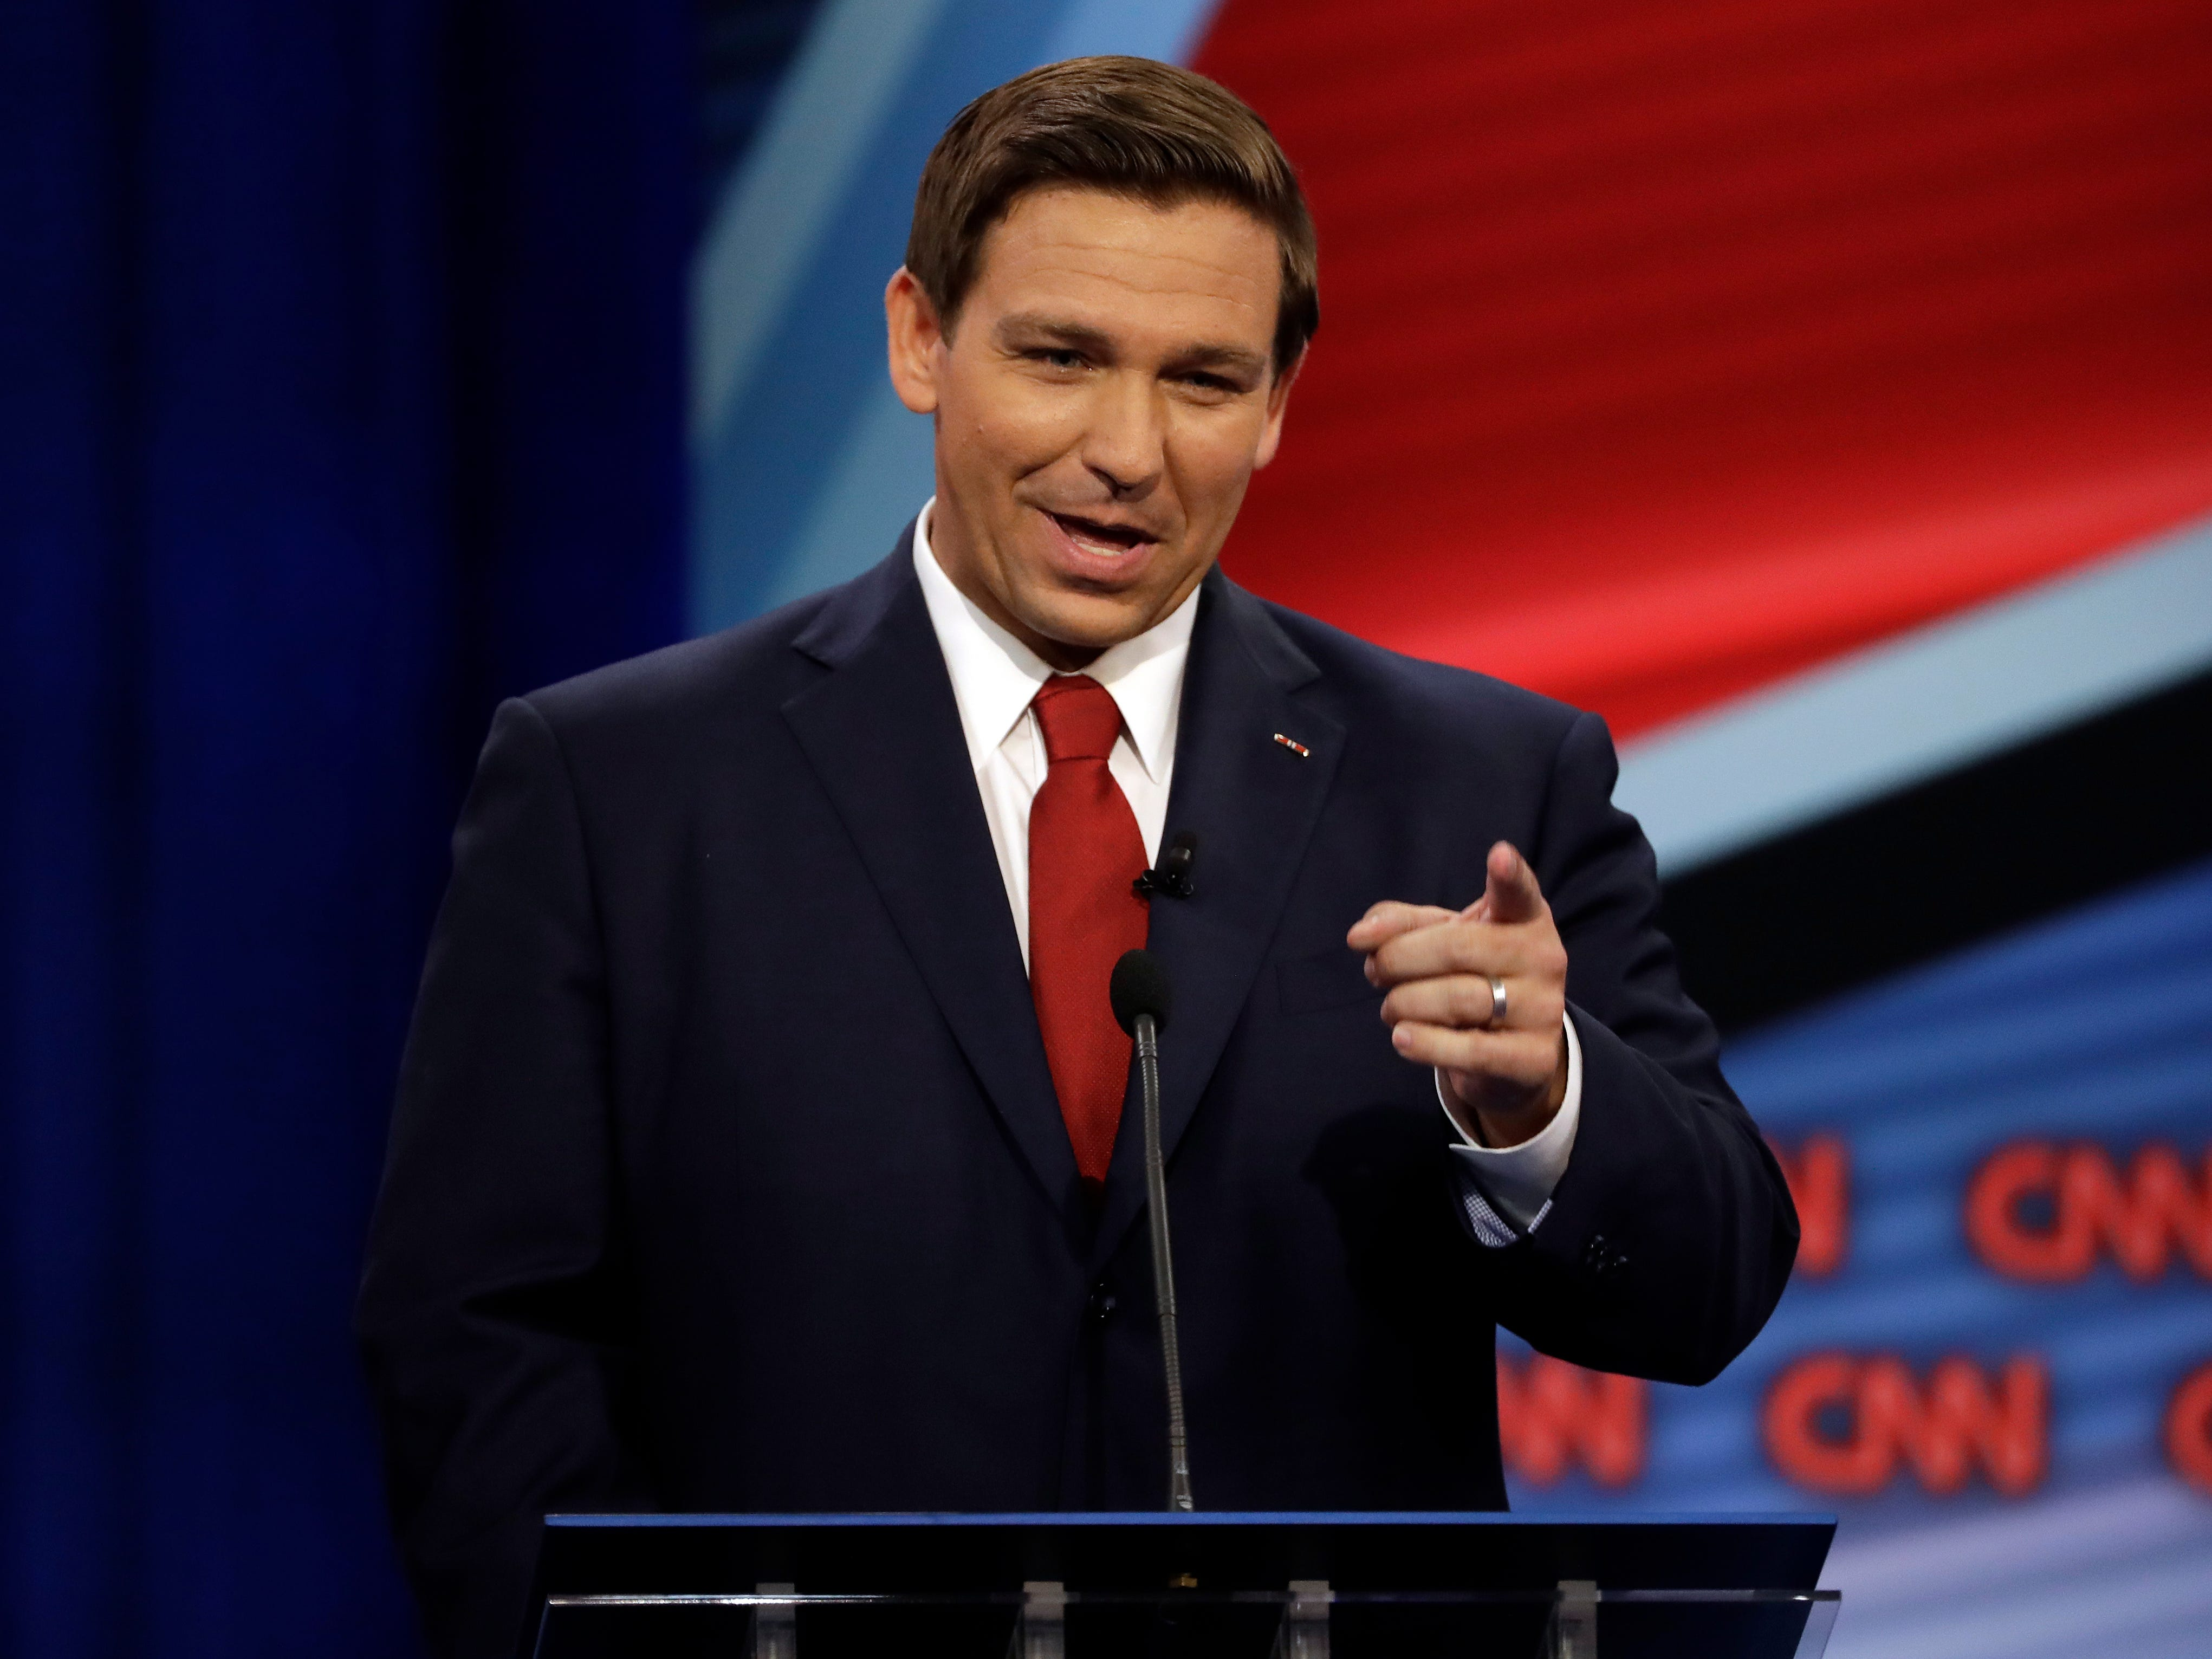 Florida Republican gubernatorial candidate Ron DeSantis speaks during a CNN debate against opponent Democratic gubernatorial candidate Andrew Gillum, Sunday, Oct. 21, 2018, in Tampa, Fla. (AP Photo/Chris O'Meara)